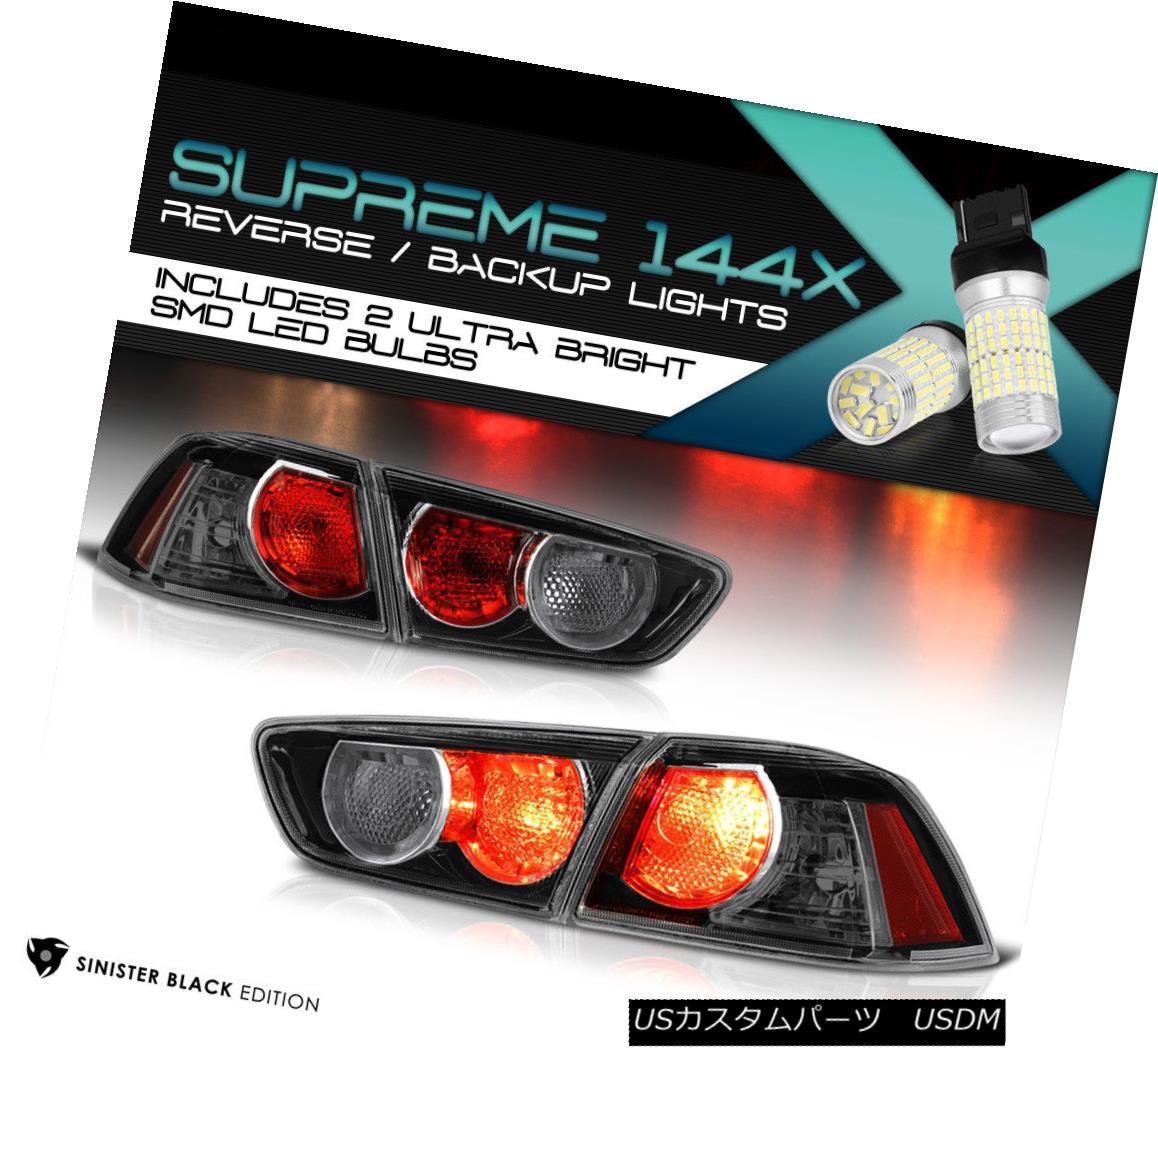 テールライト {Full SMD Reverse} 08-17 Mitsubishi Lancer EVO Ralliart Tail Lights Replacement {フルSMDリバース} 08-17三菱ランサーEVO Ralliartテールライト交換